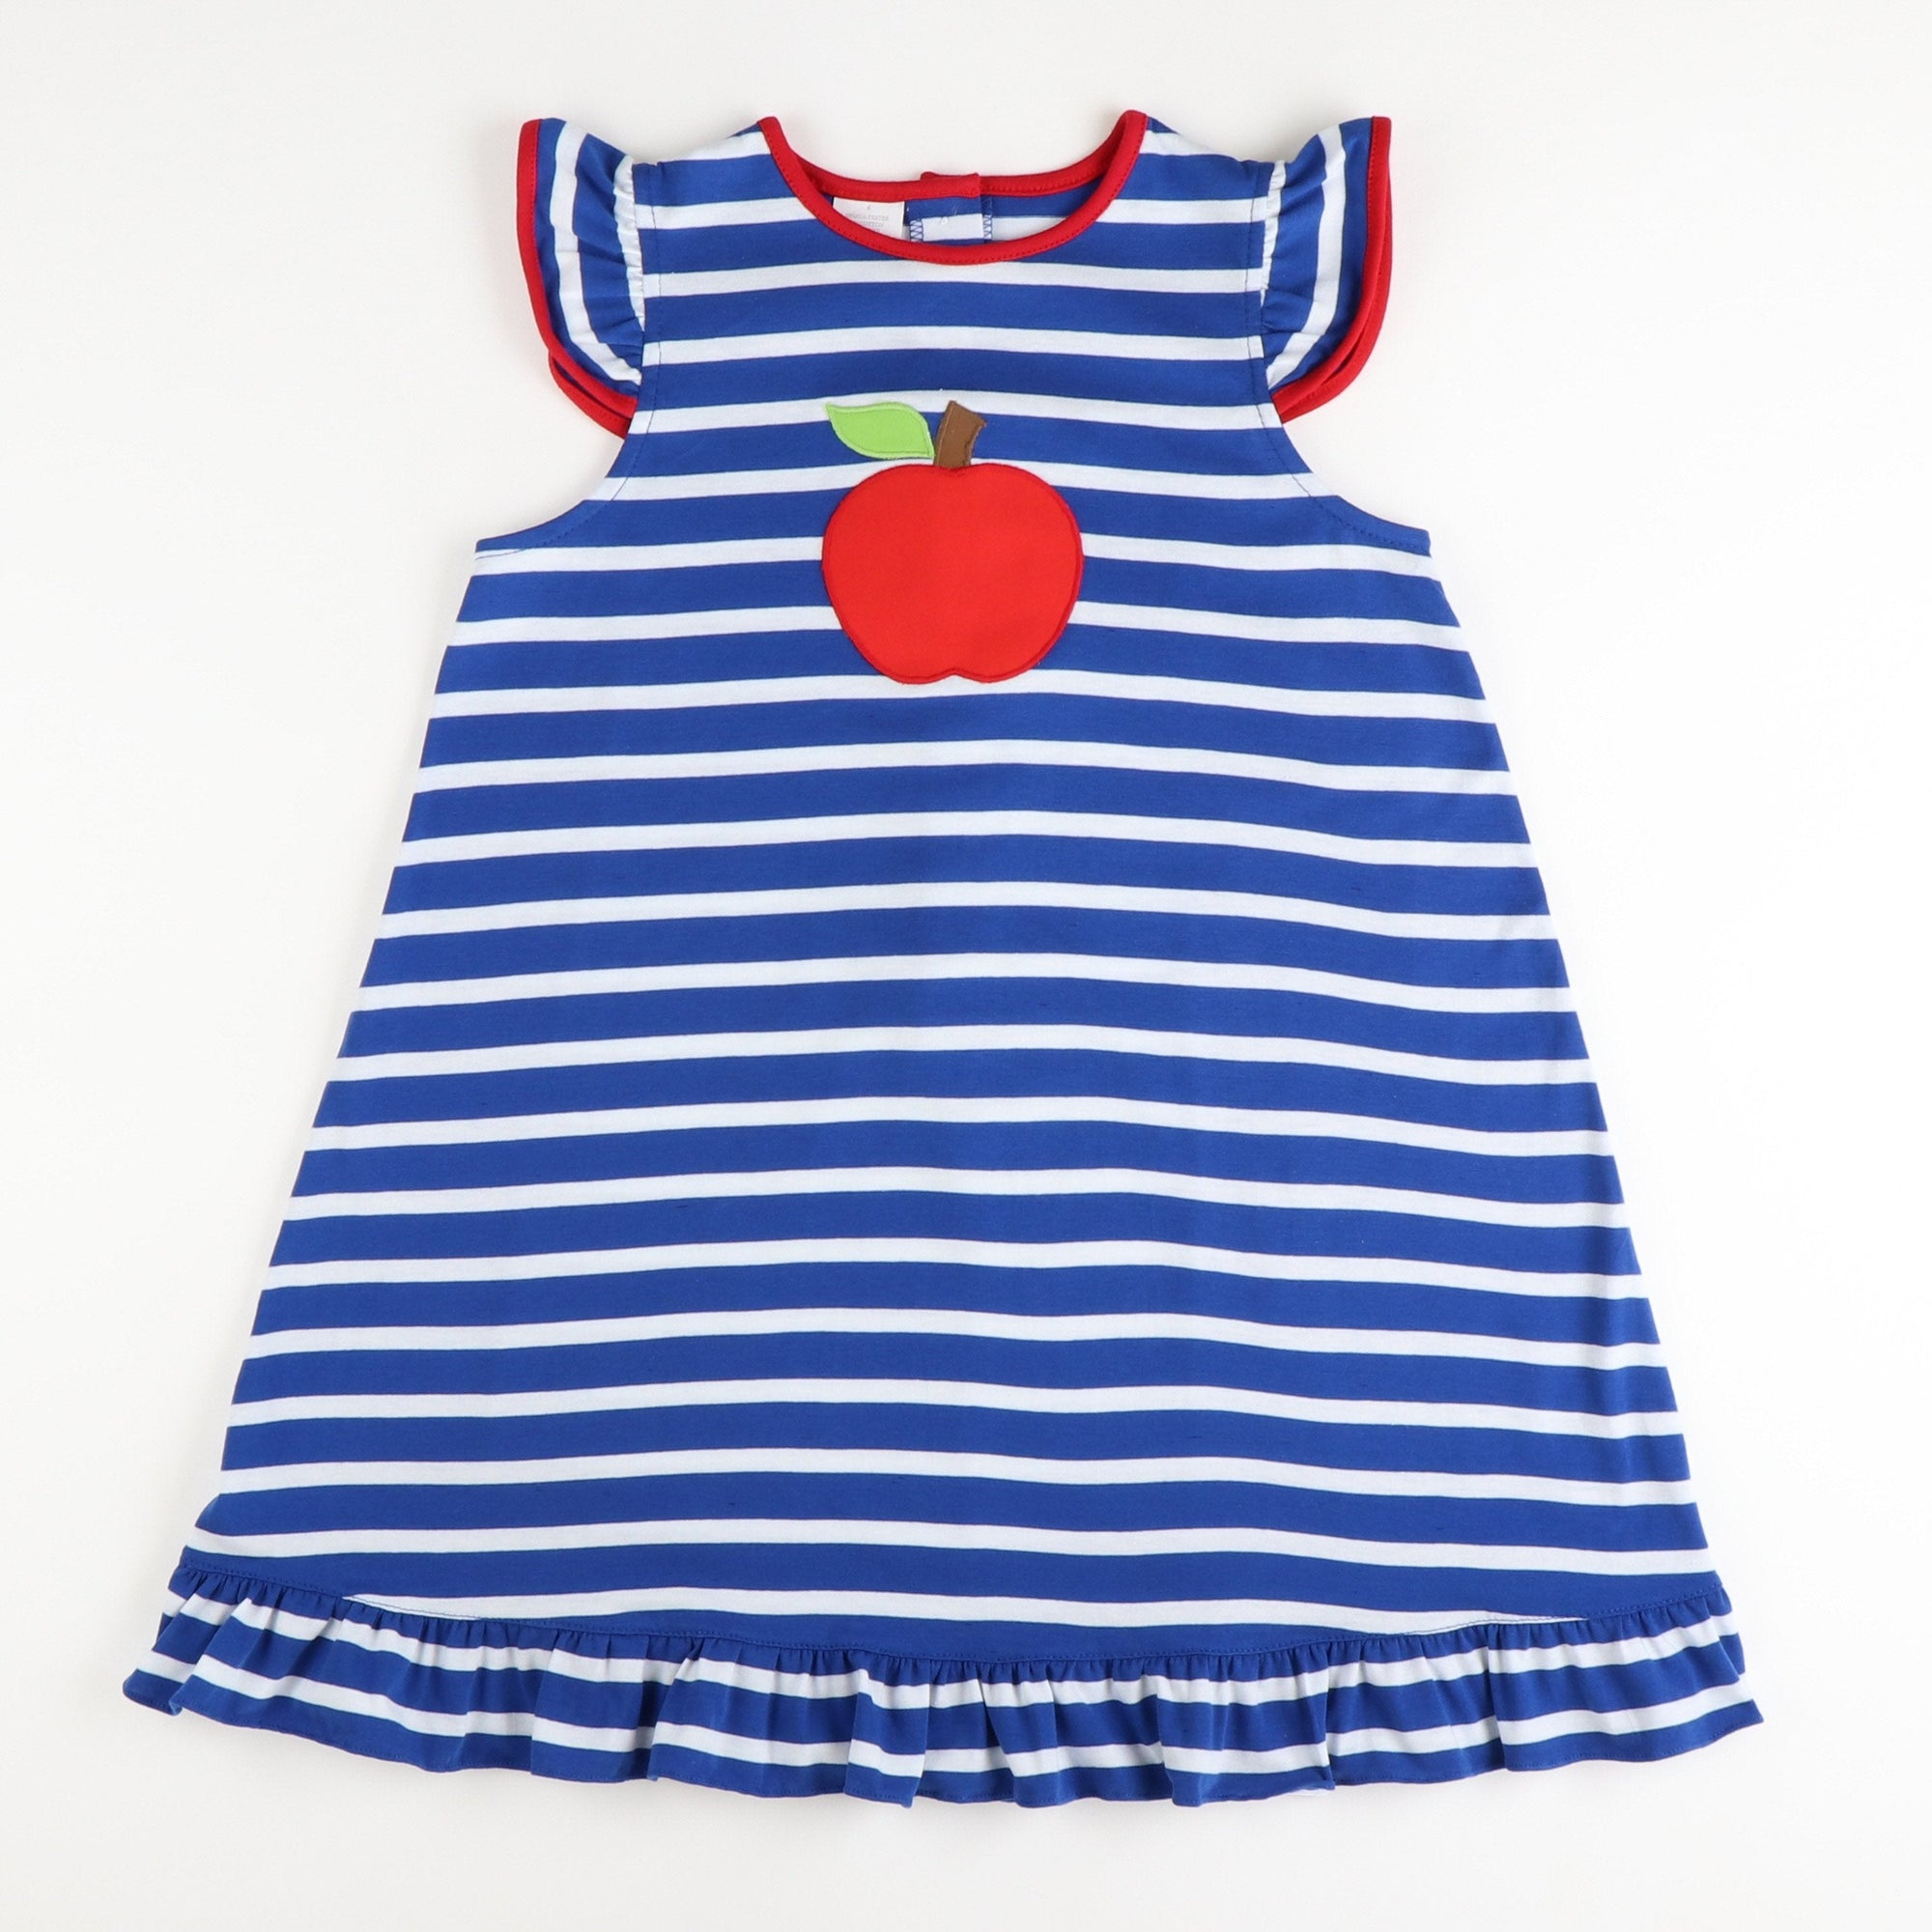 Appliquéd Apple Dress - Royal Blue Stripe Knit - Stellybelly ?id=28062074110031